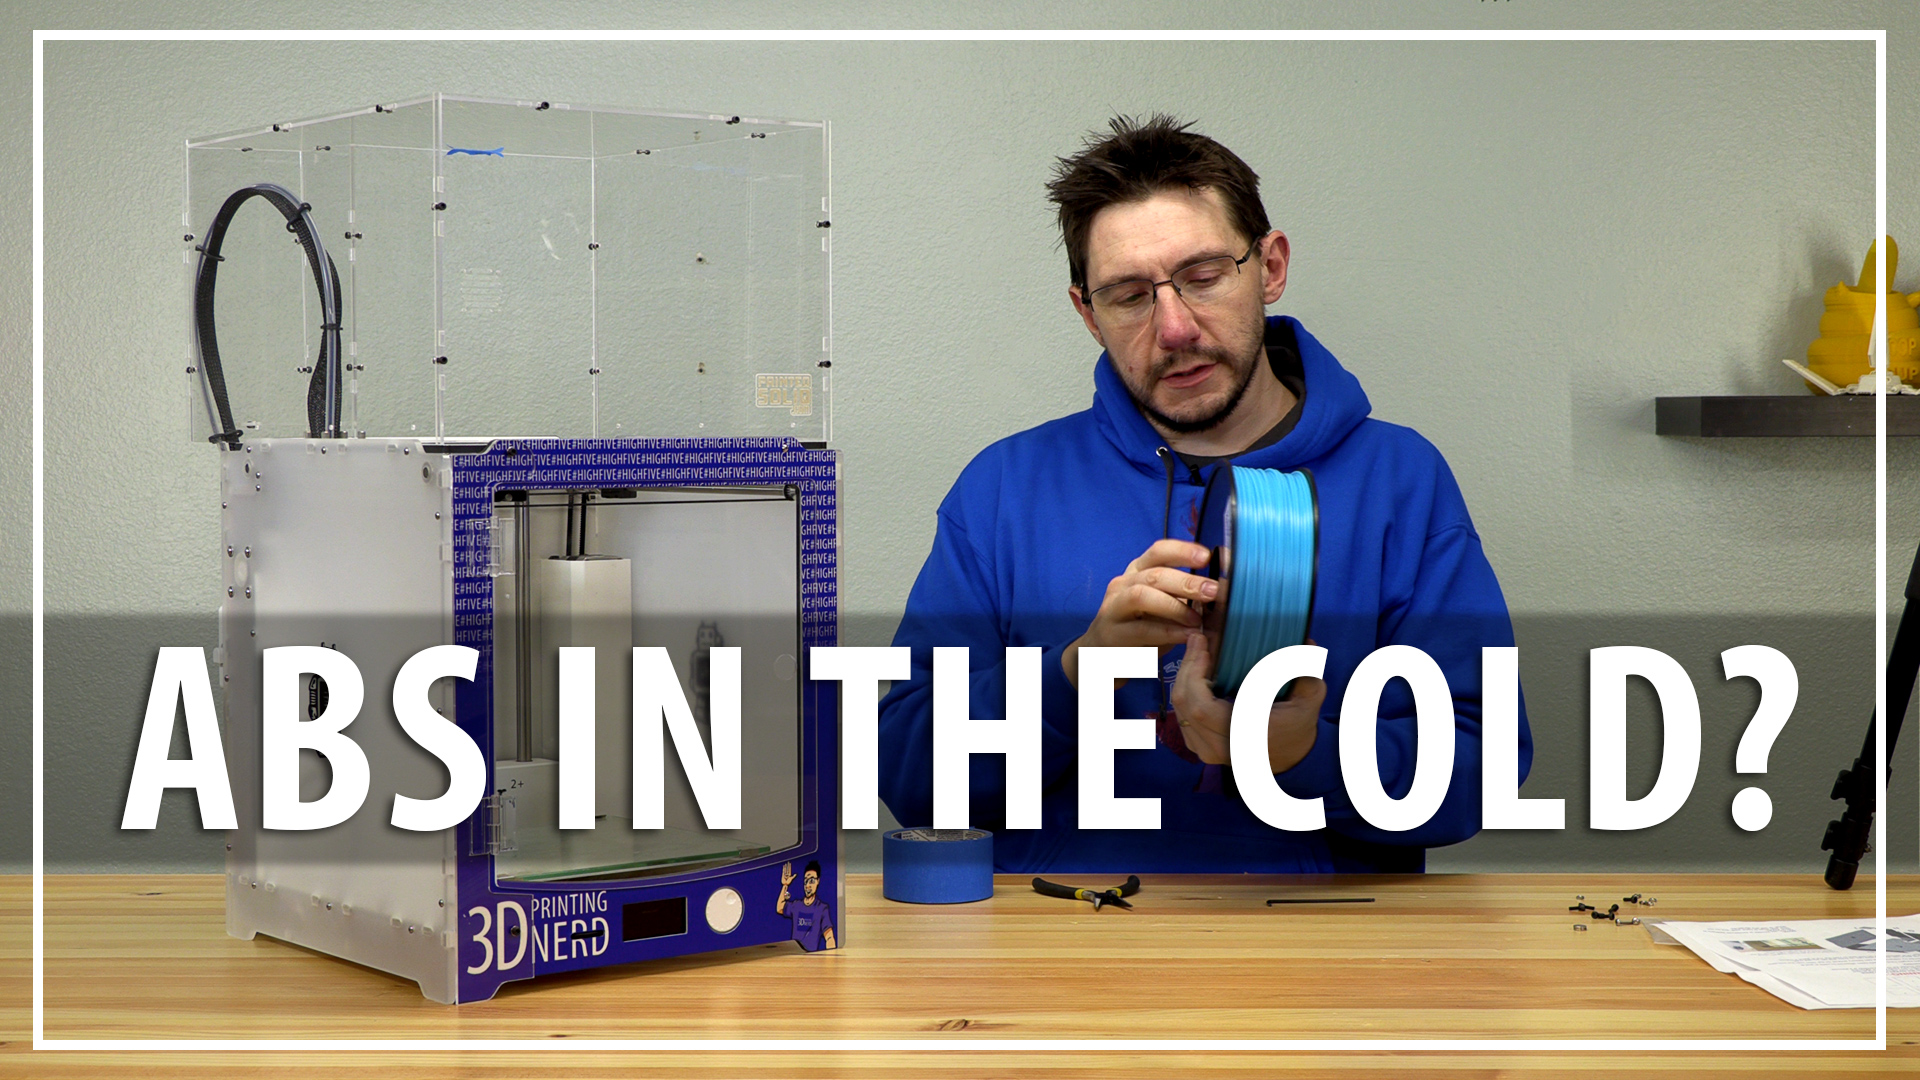 3D Printing ABS In The Cold! // Assembling and Testing a 3D Printer Enclosure